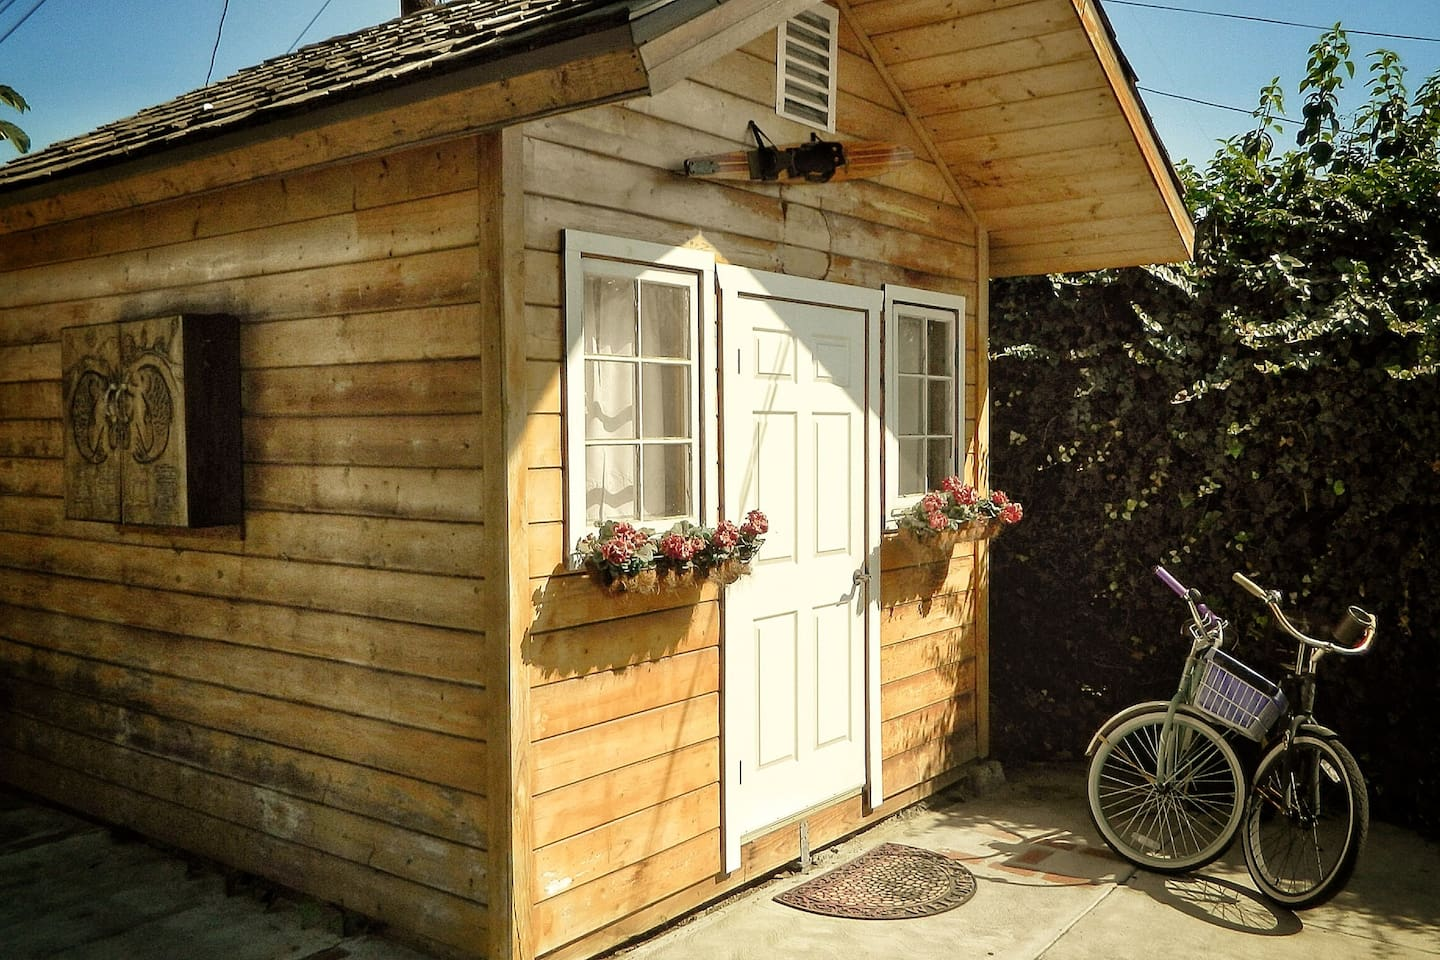 Cozy Cabin in Urban Los Angeles. Have a game of darts, enjoy breakfast on the patio, or just relax in the sunshine.